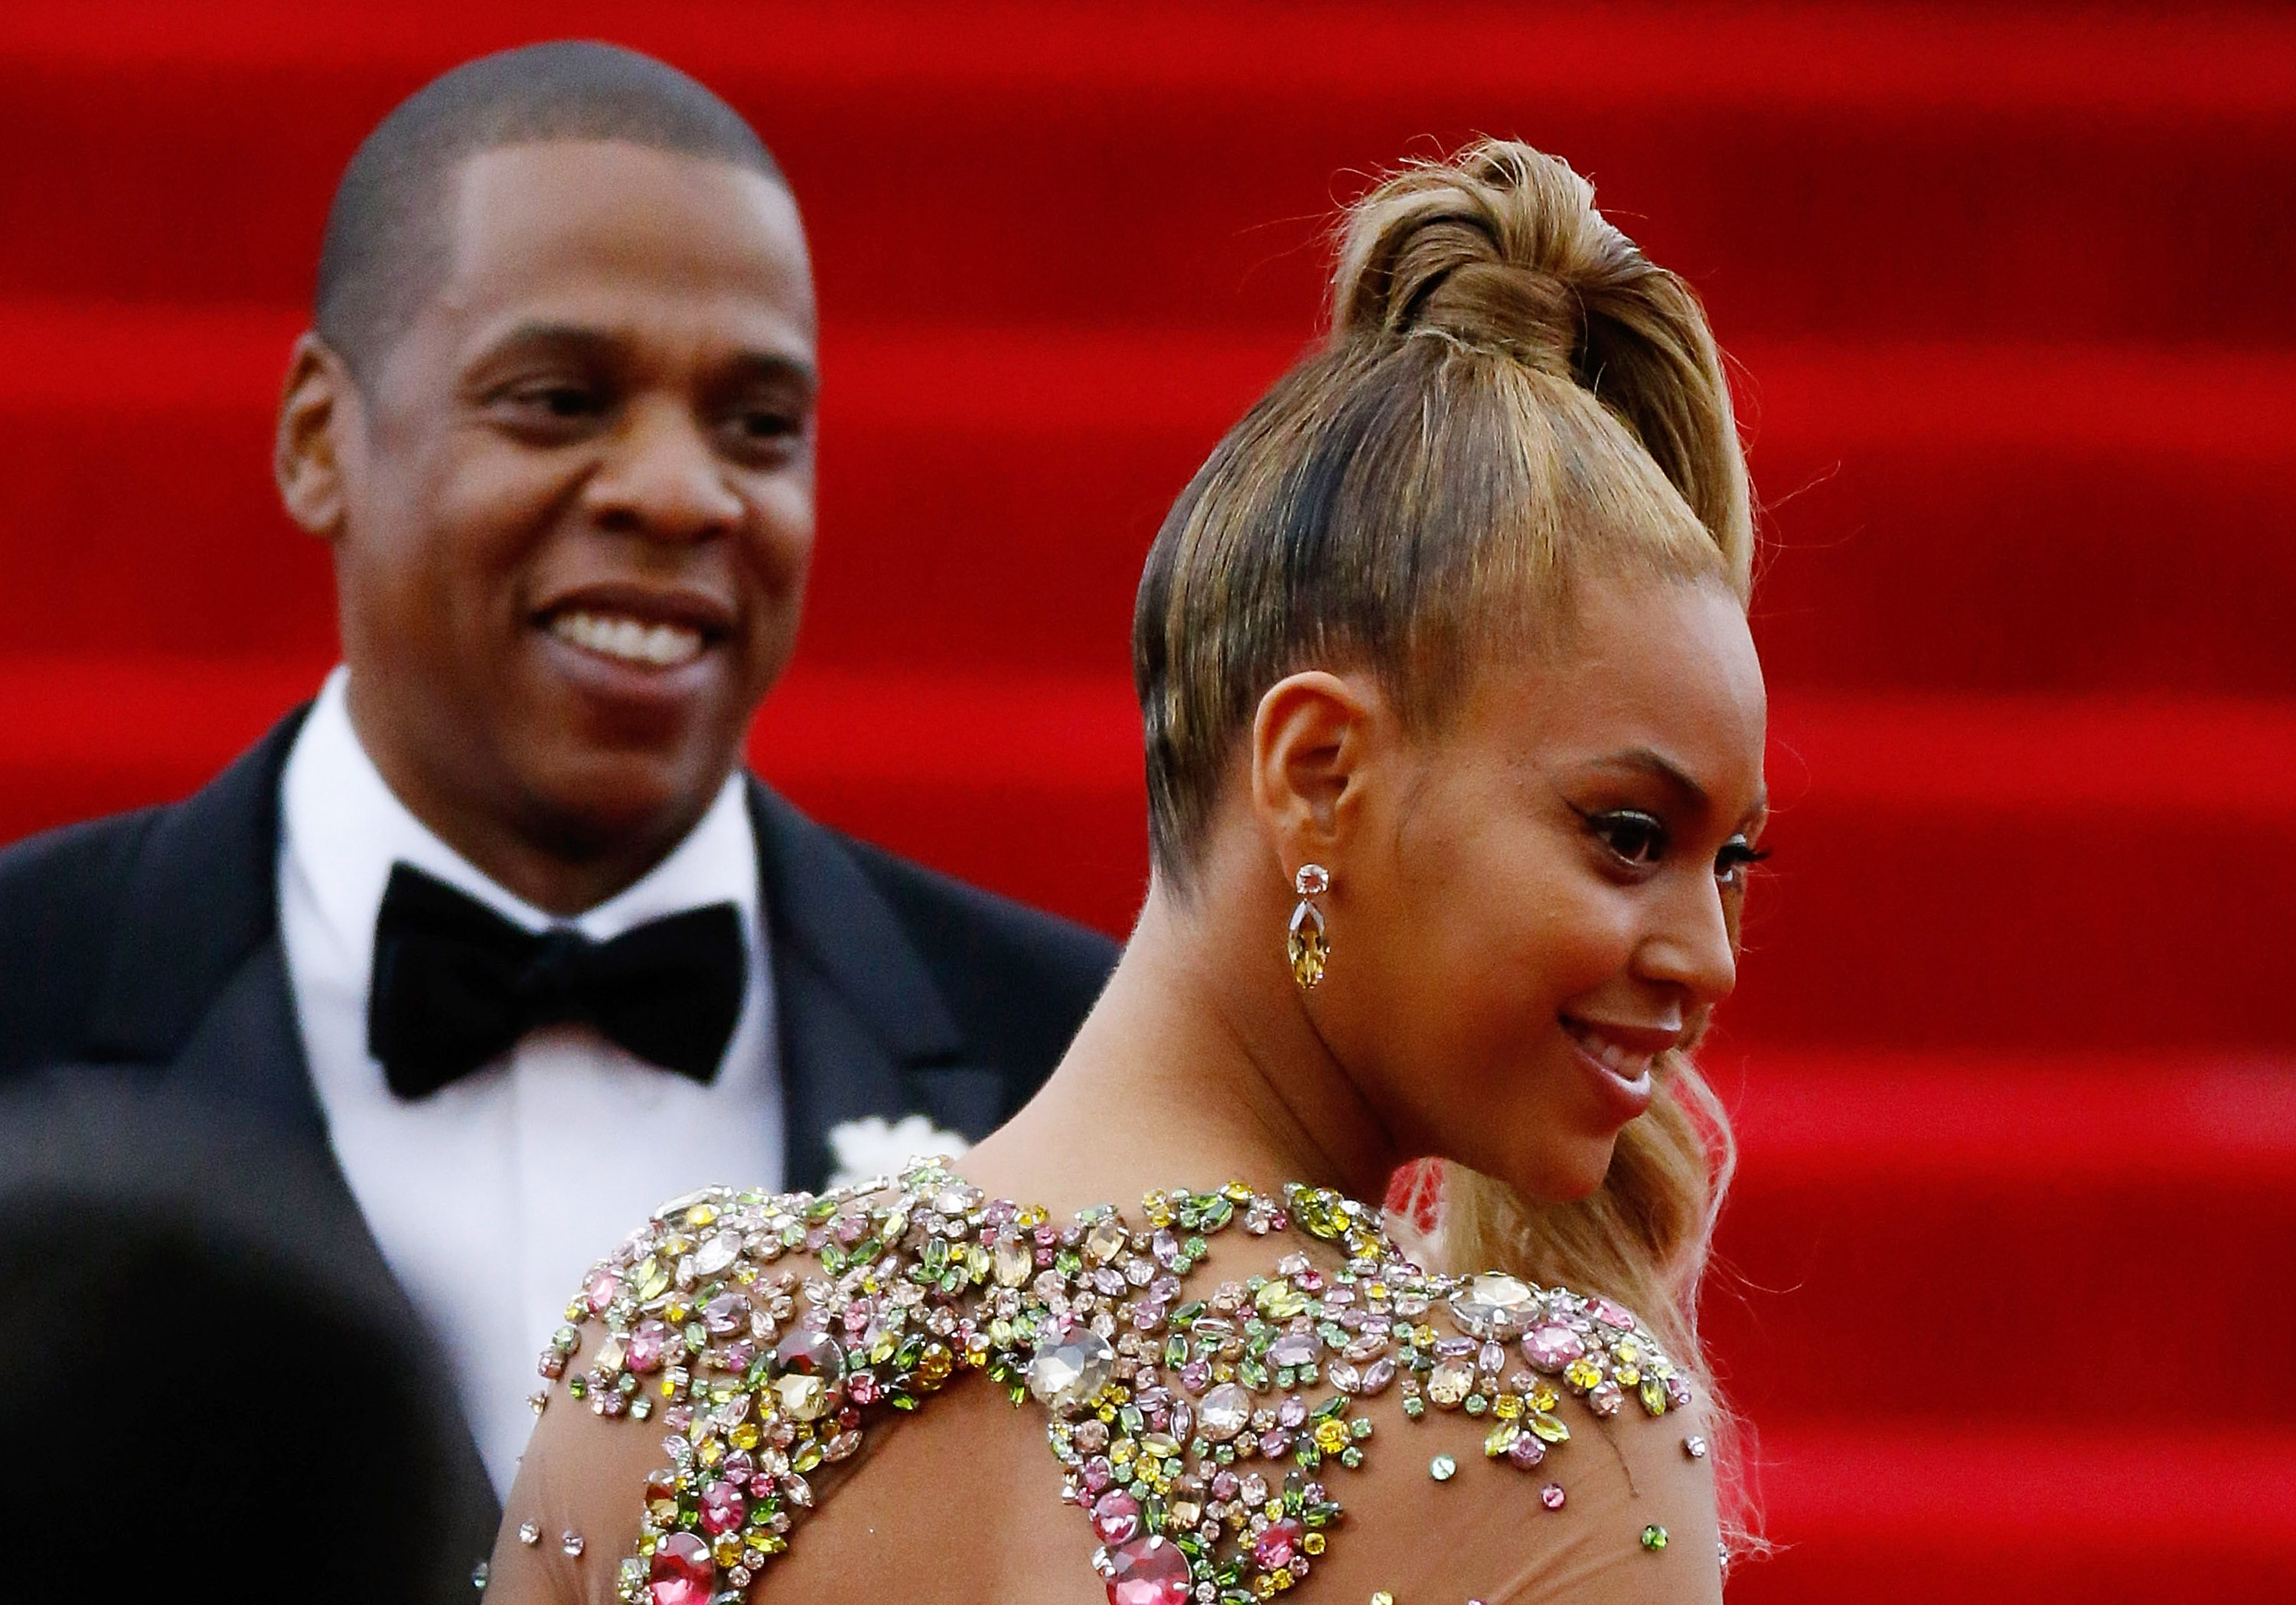 Beyonce And Jay Z S Tattoo Pictures to Pin on Pinterest - TattoosKid